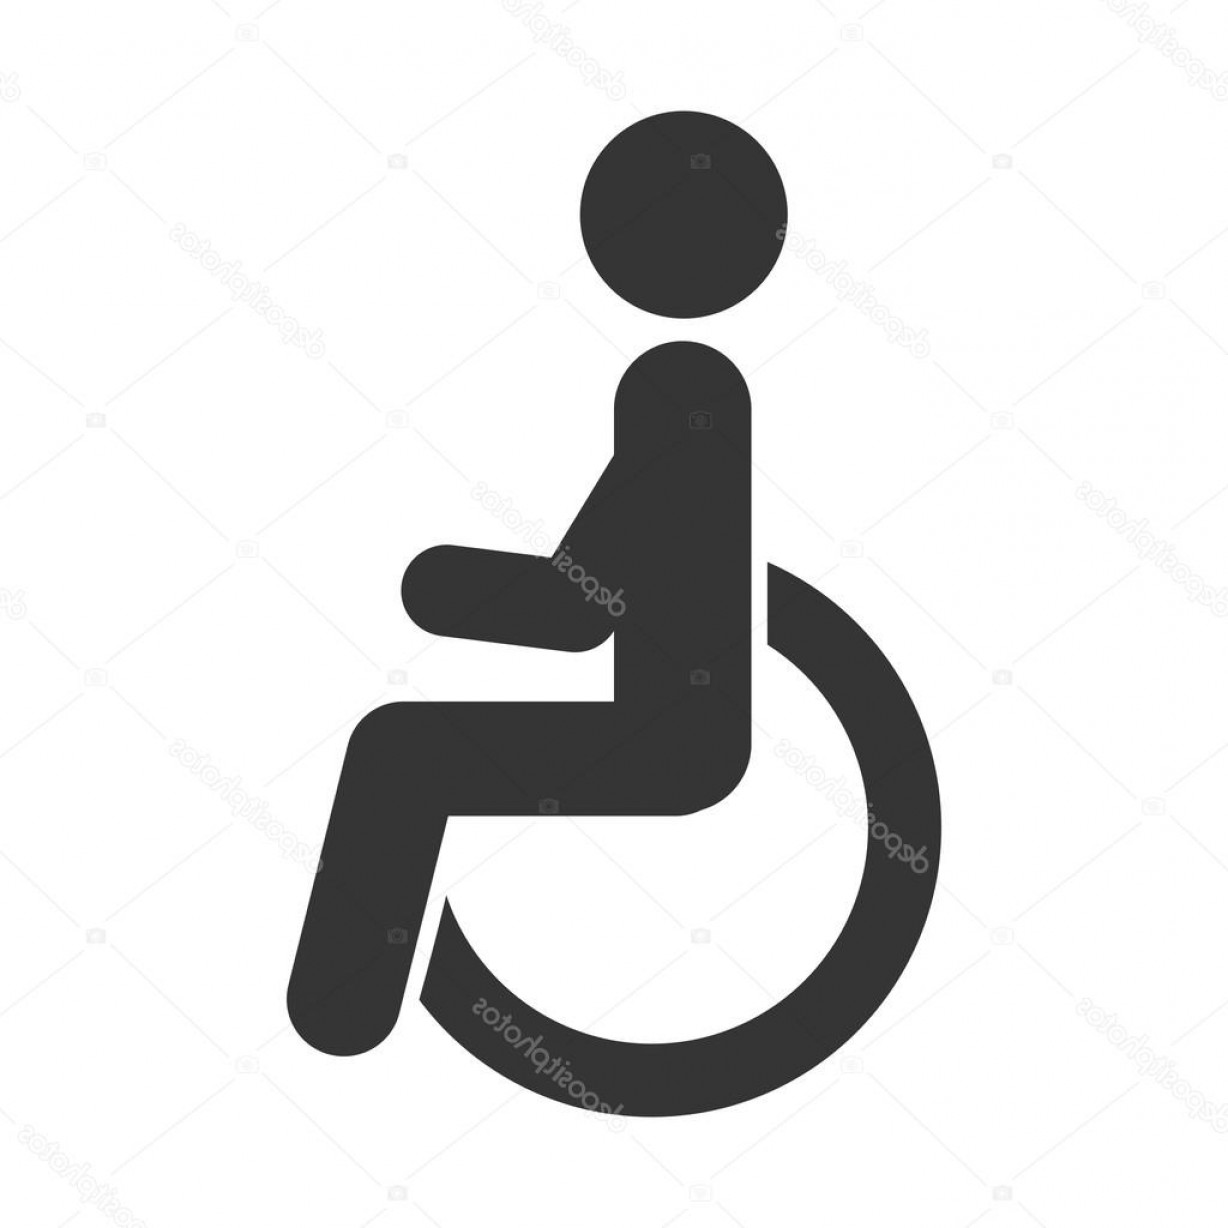 1228x1228 Stock Illustration Handicapped Symbol Wheelchair Icon Vector